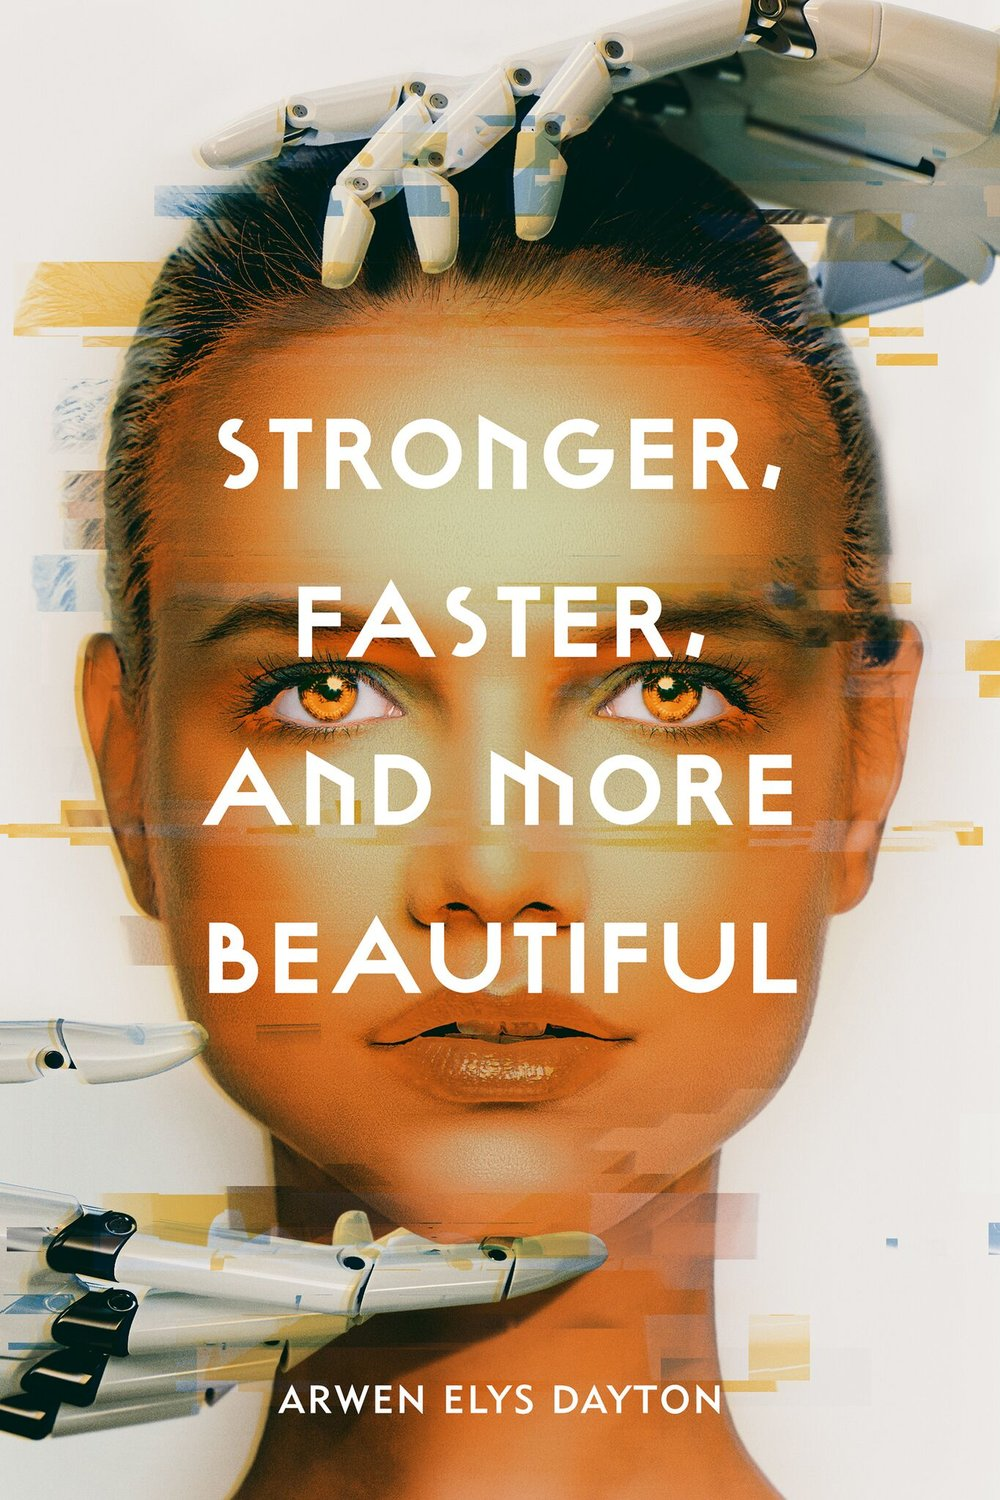 Pre-Order My Newest Book - Stronger, Faster, And More Beautiful